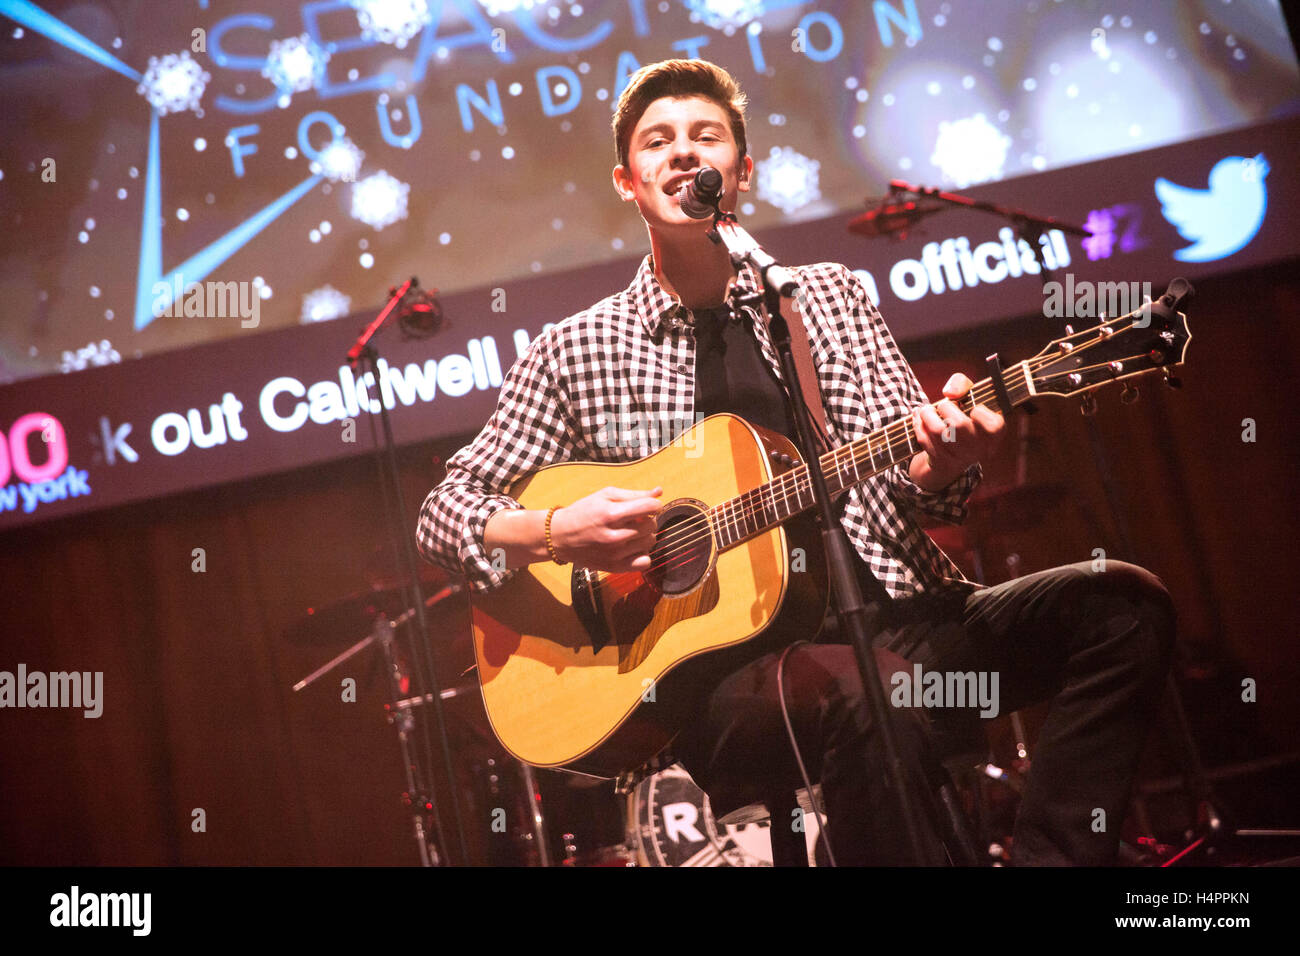 Shawn Mendes Performing Live In Concert At Z100 Coca Cola All